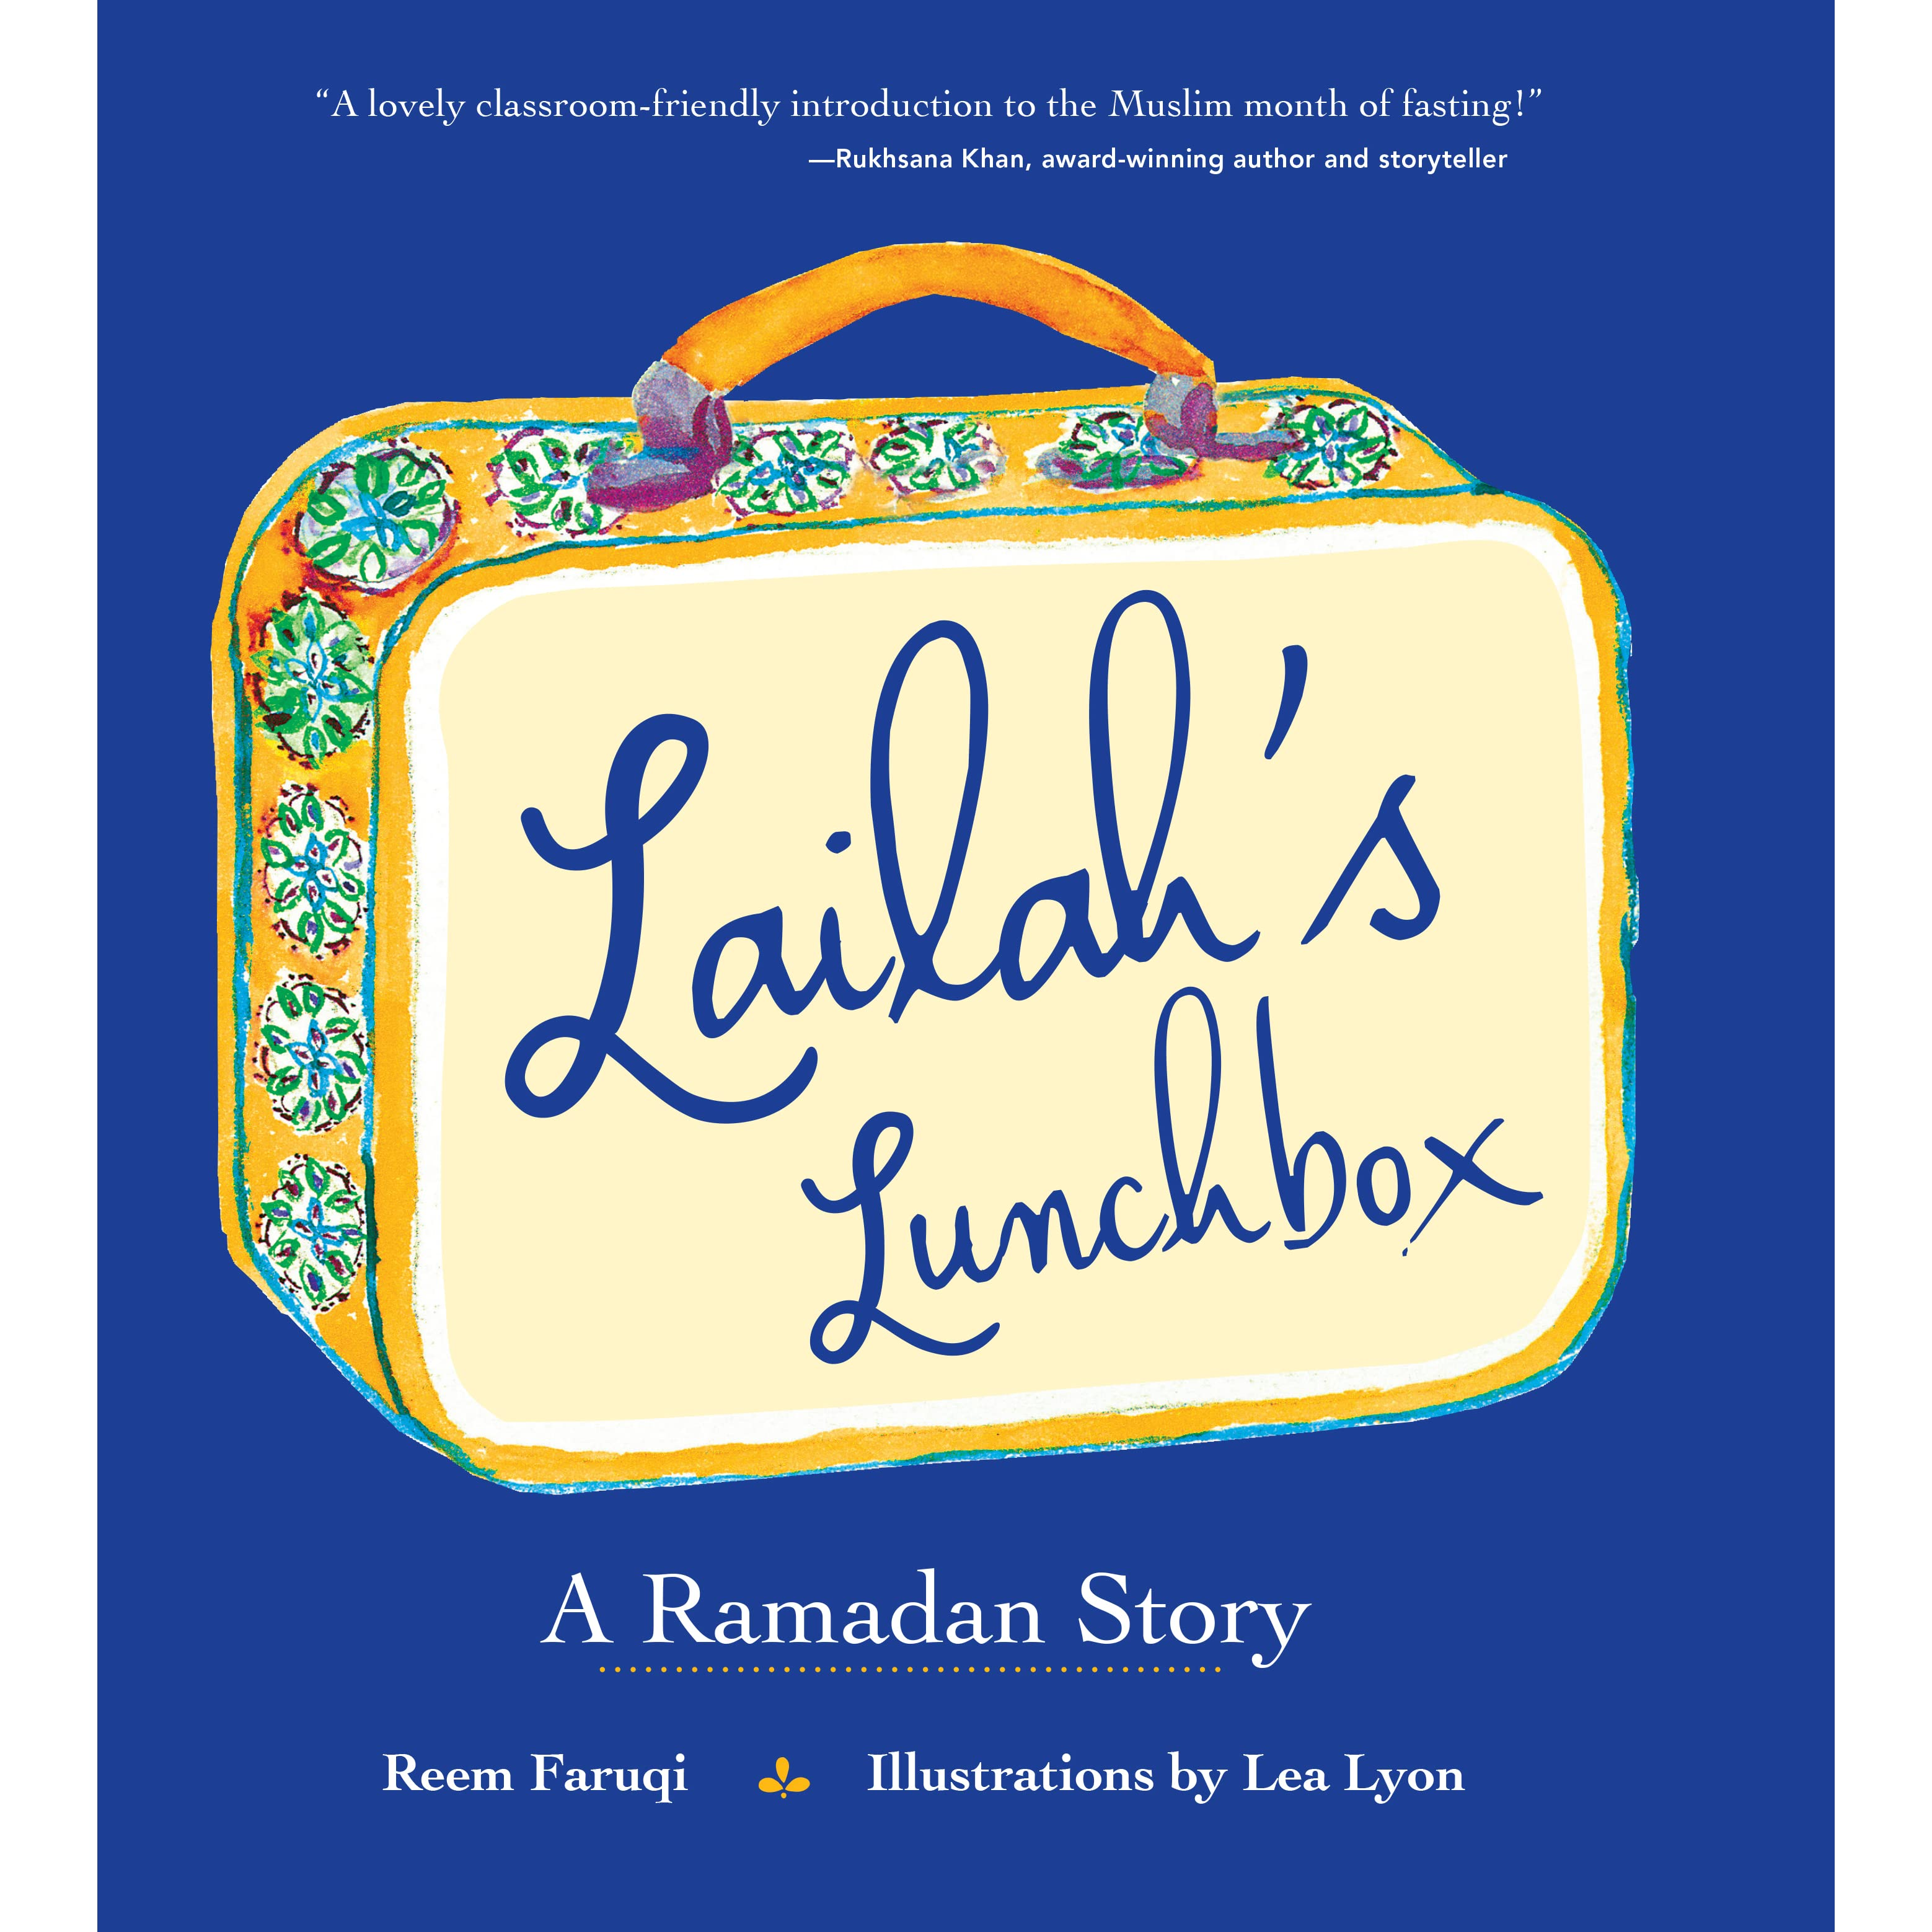 Ramadan....What has been the best book you've ever read?